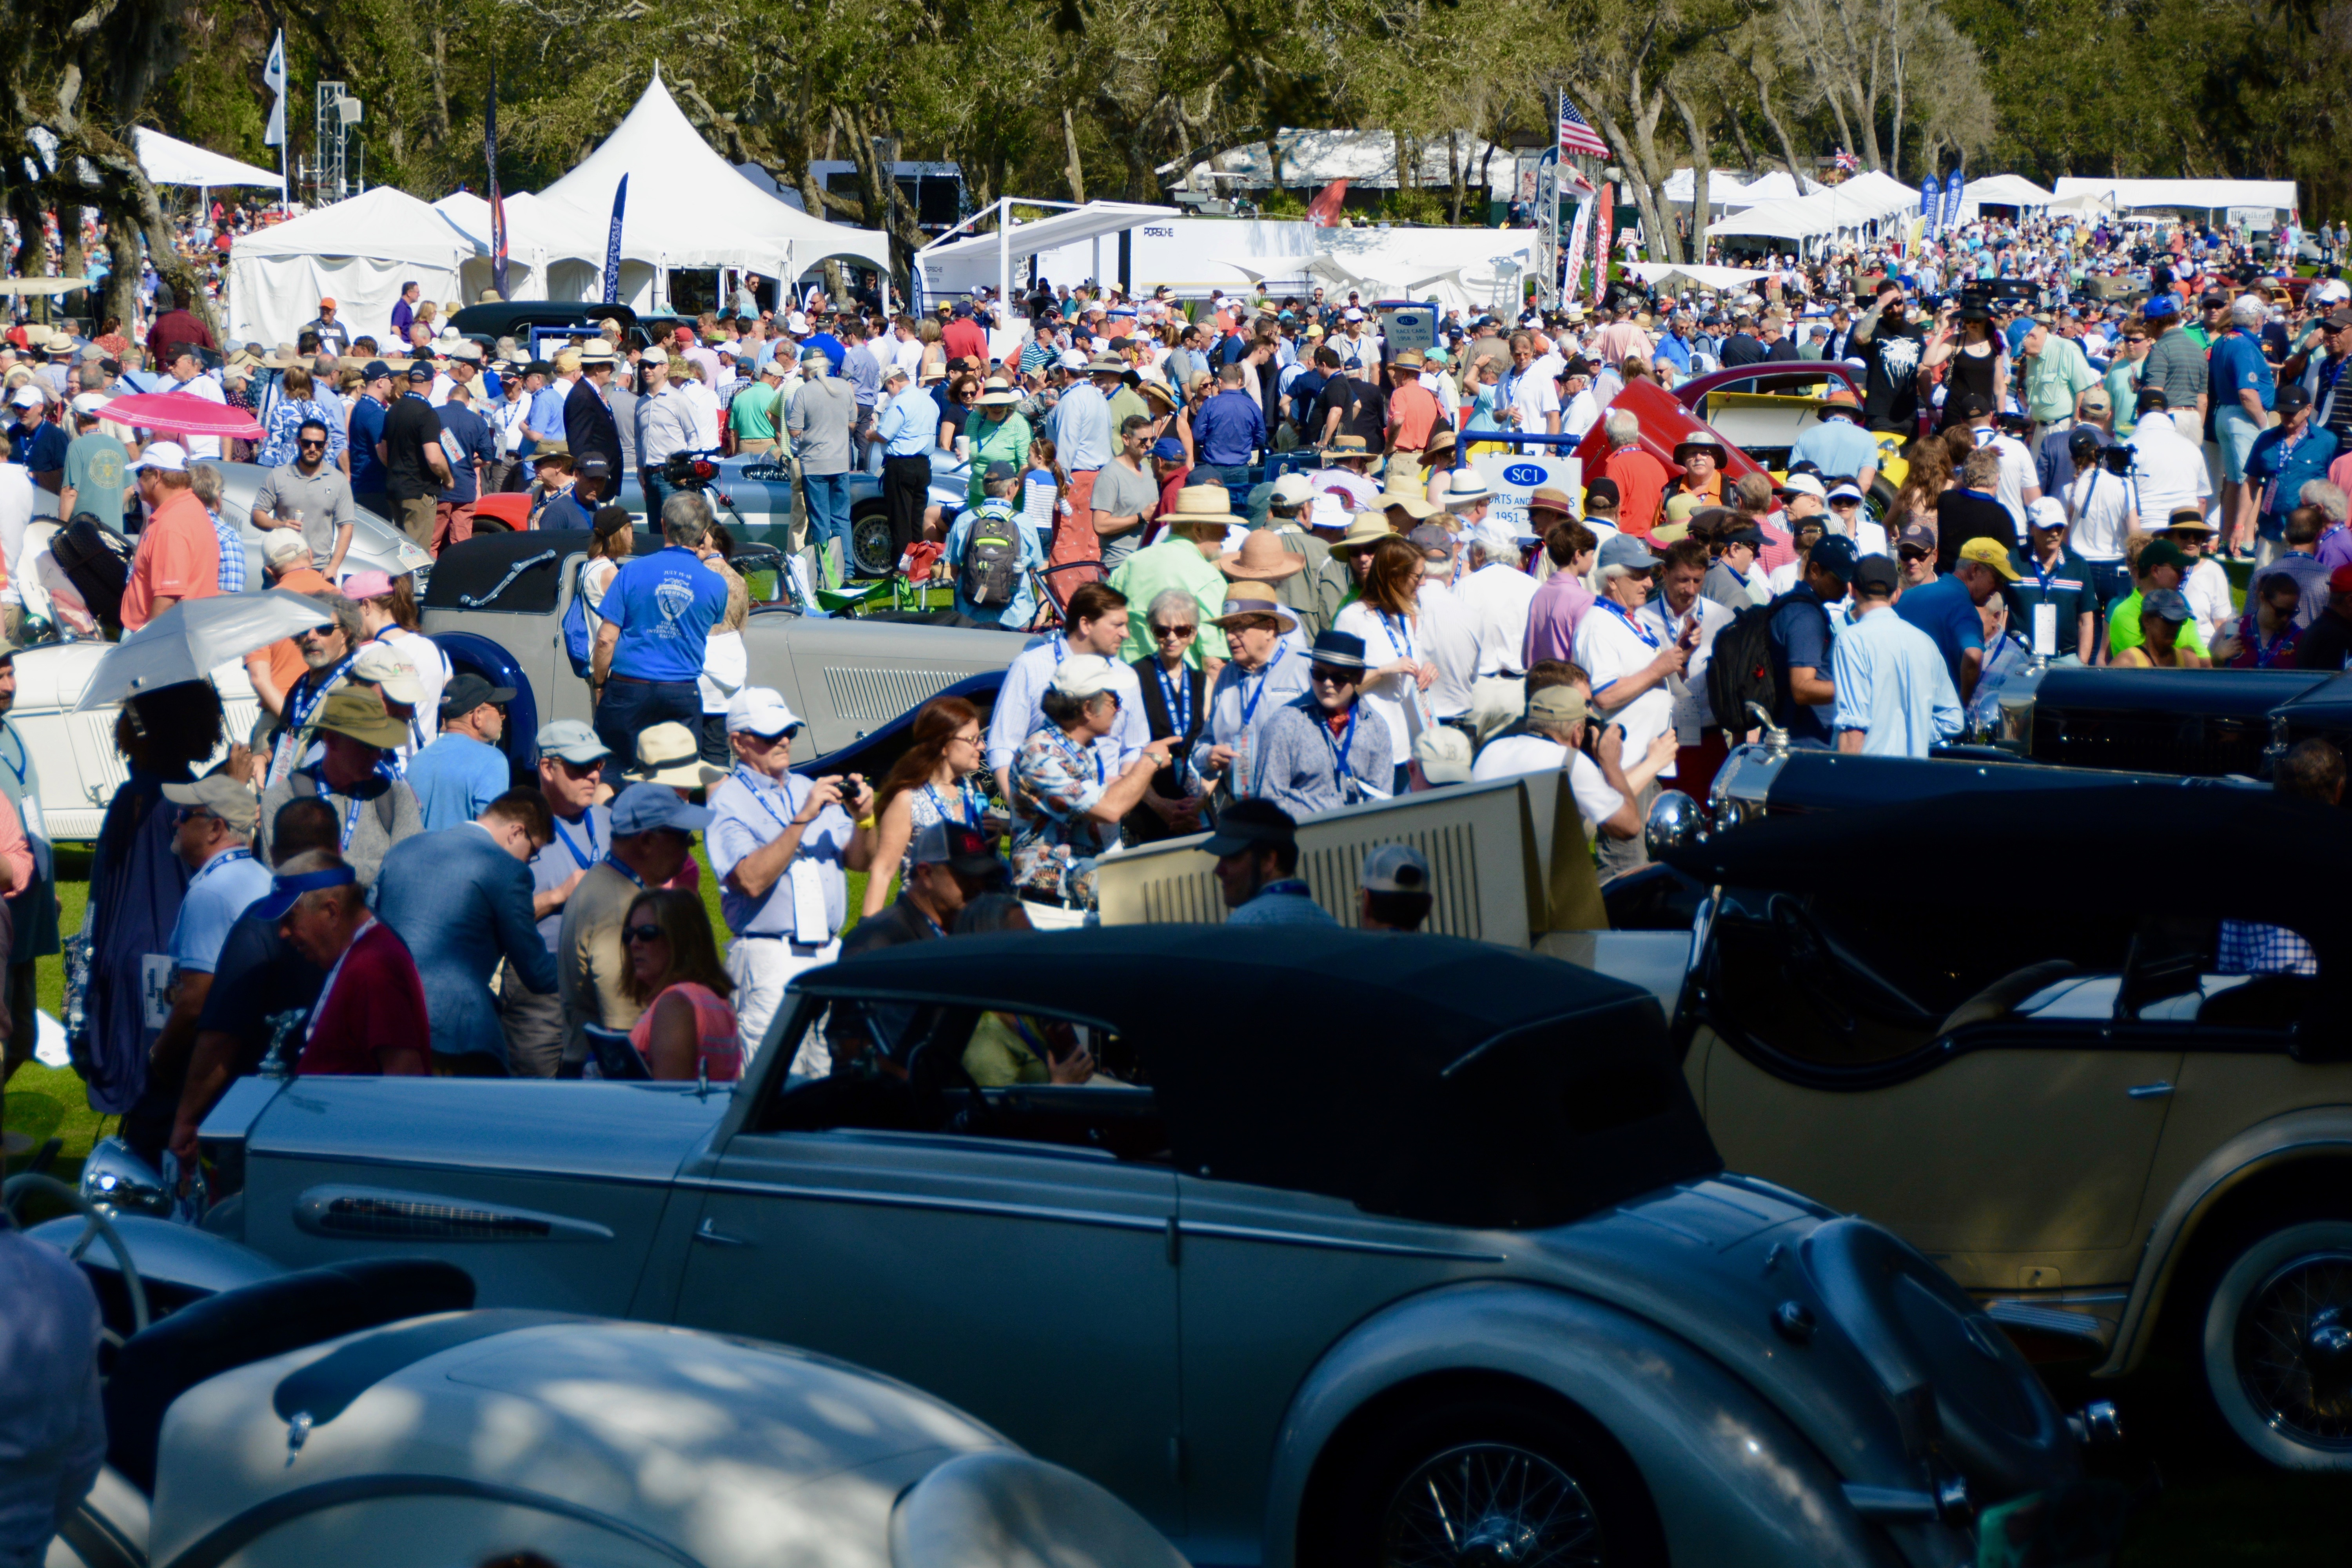 Amelia Island, It's been two dozen dazzling years for Amelia Island Concours, ClassicCars.com Journal